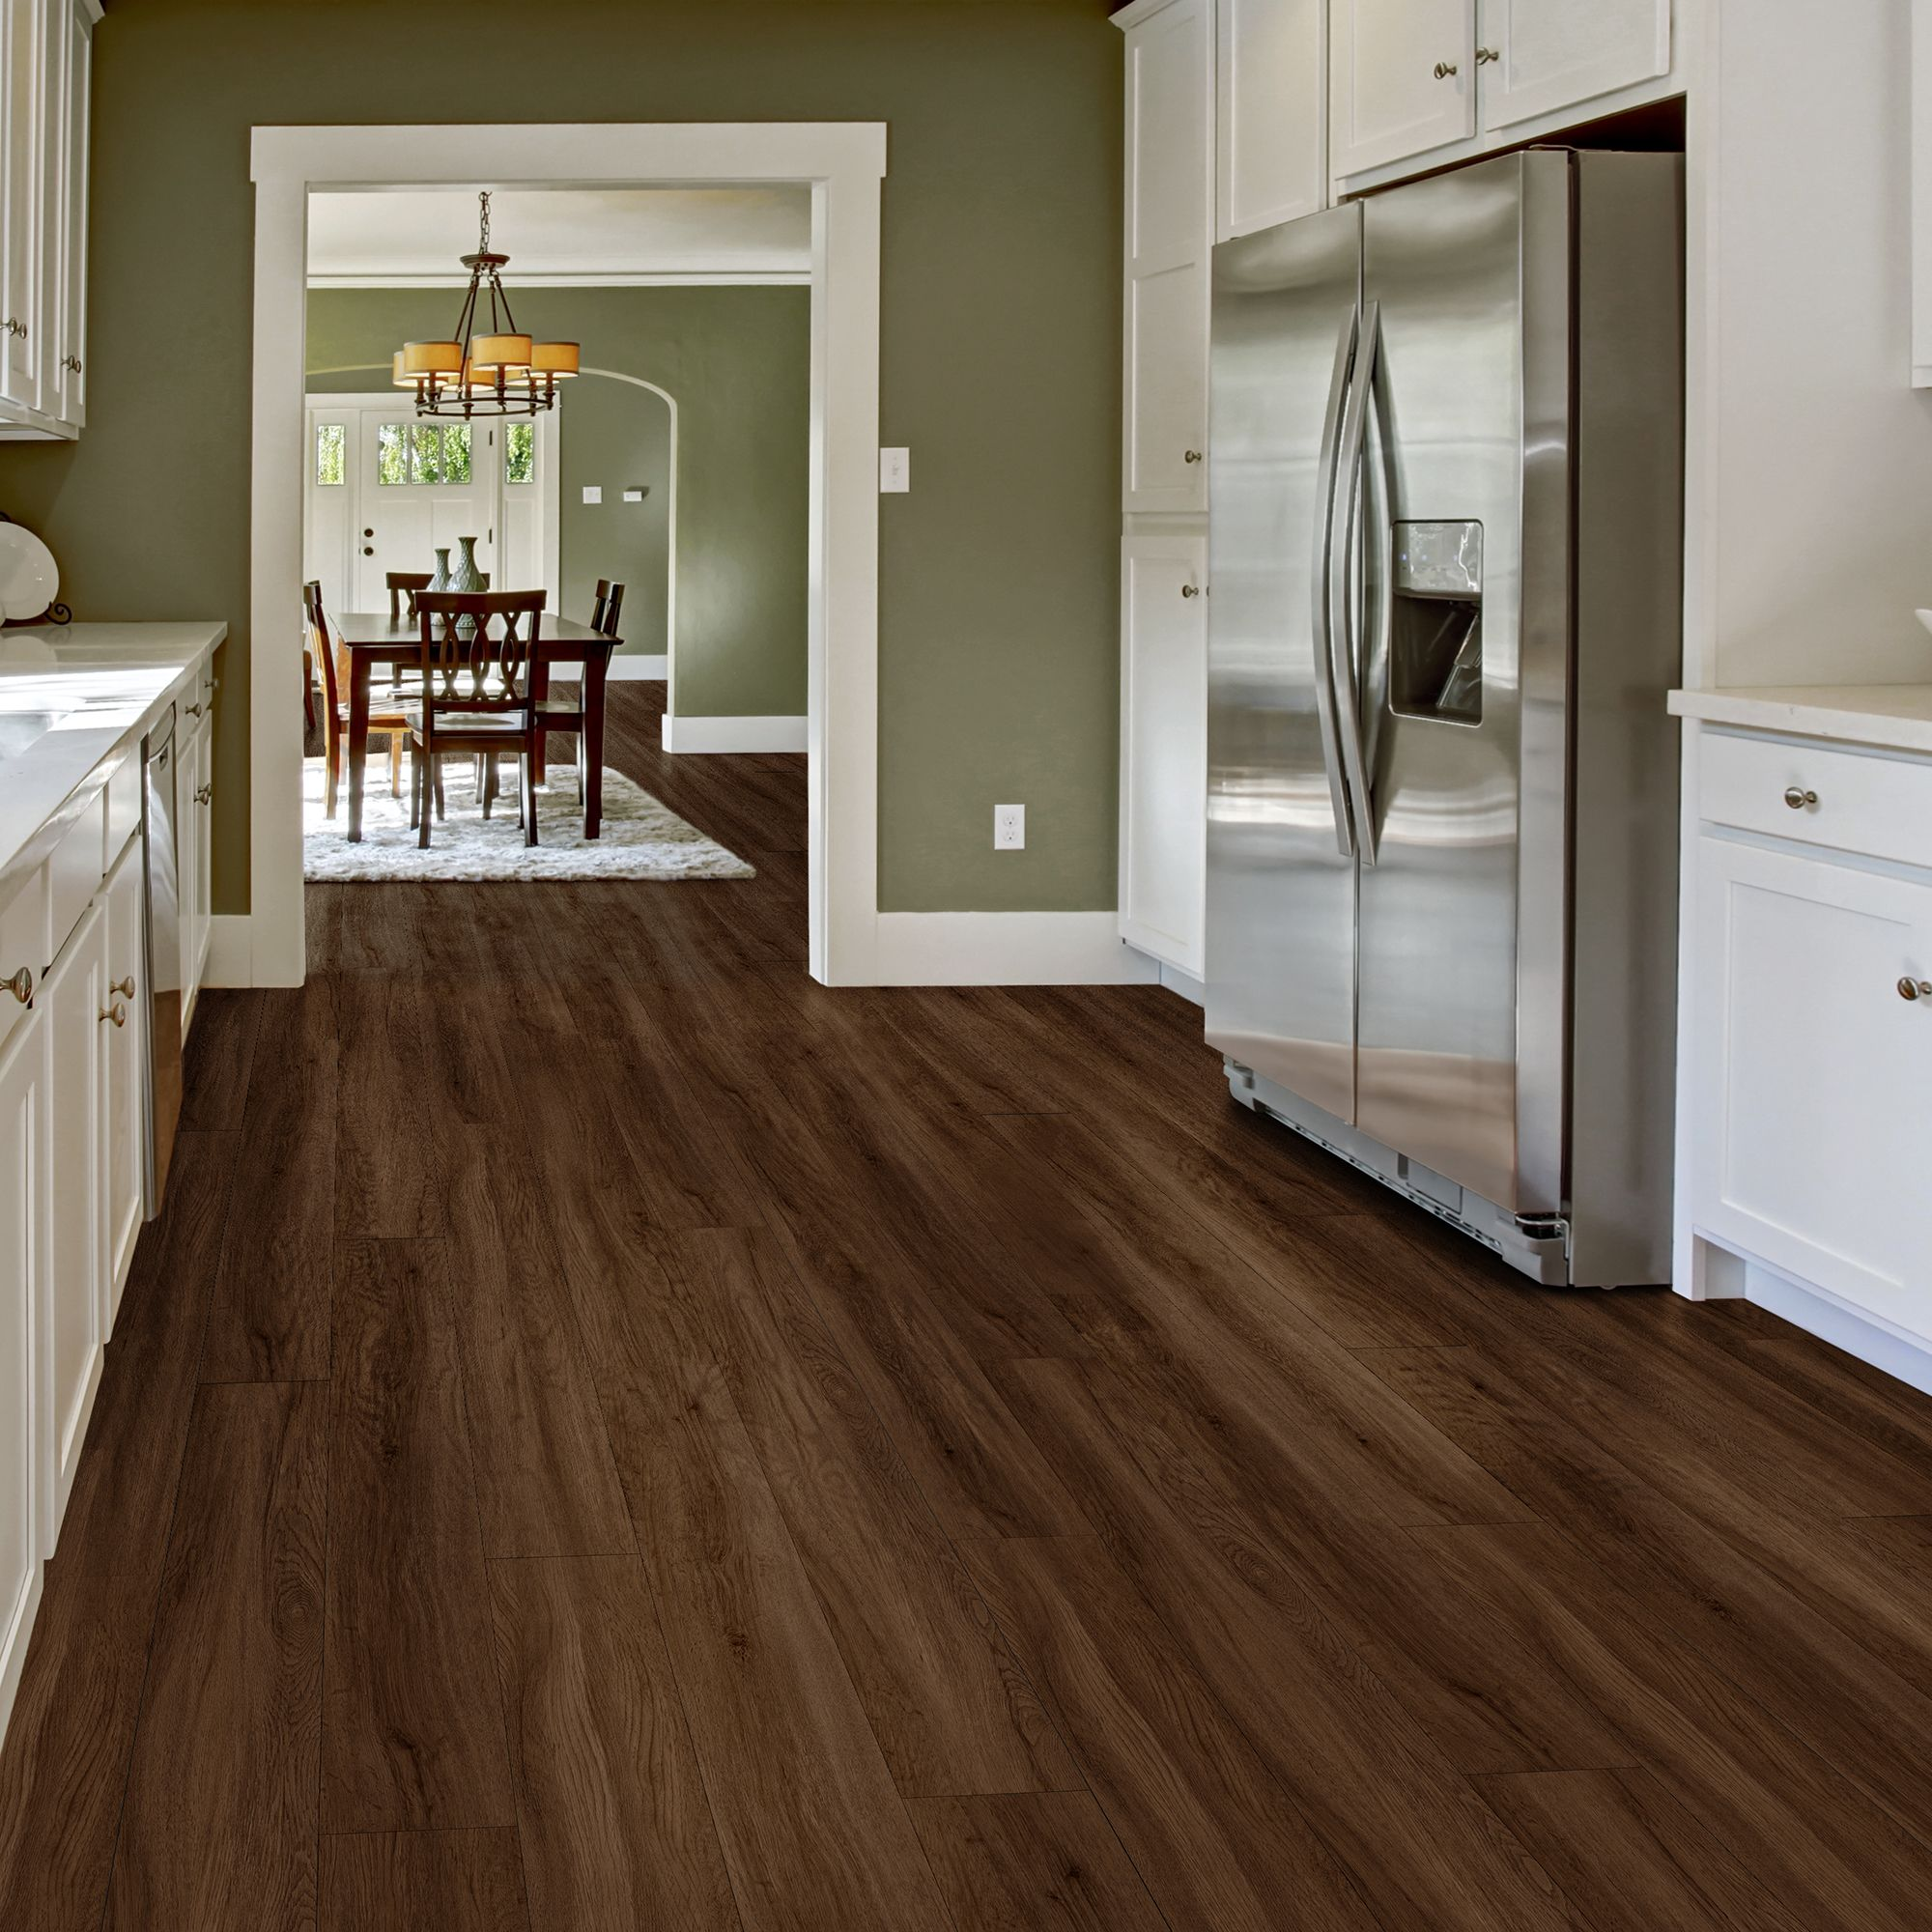 Added this Allure ISOCORE Vinyl Plank DIY Flooring to my